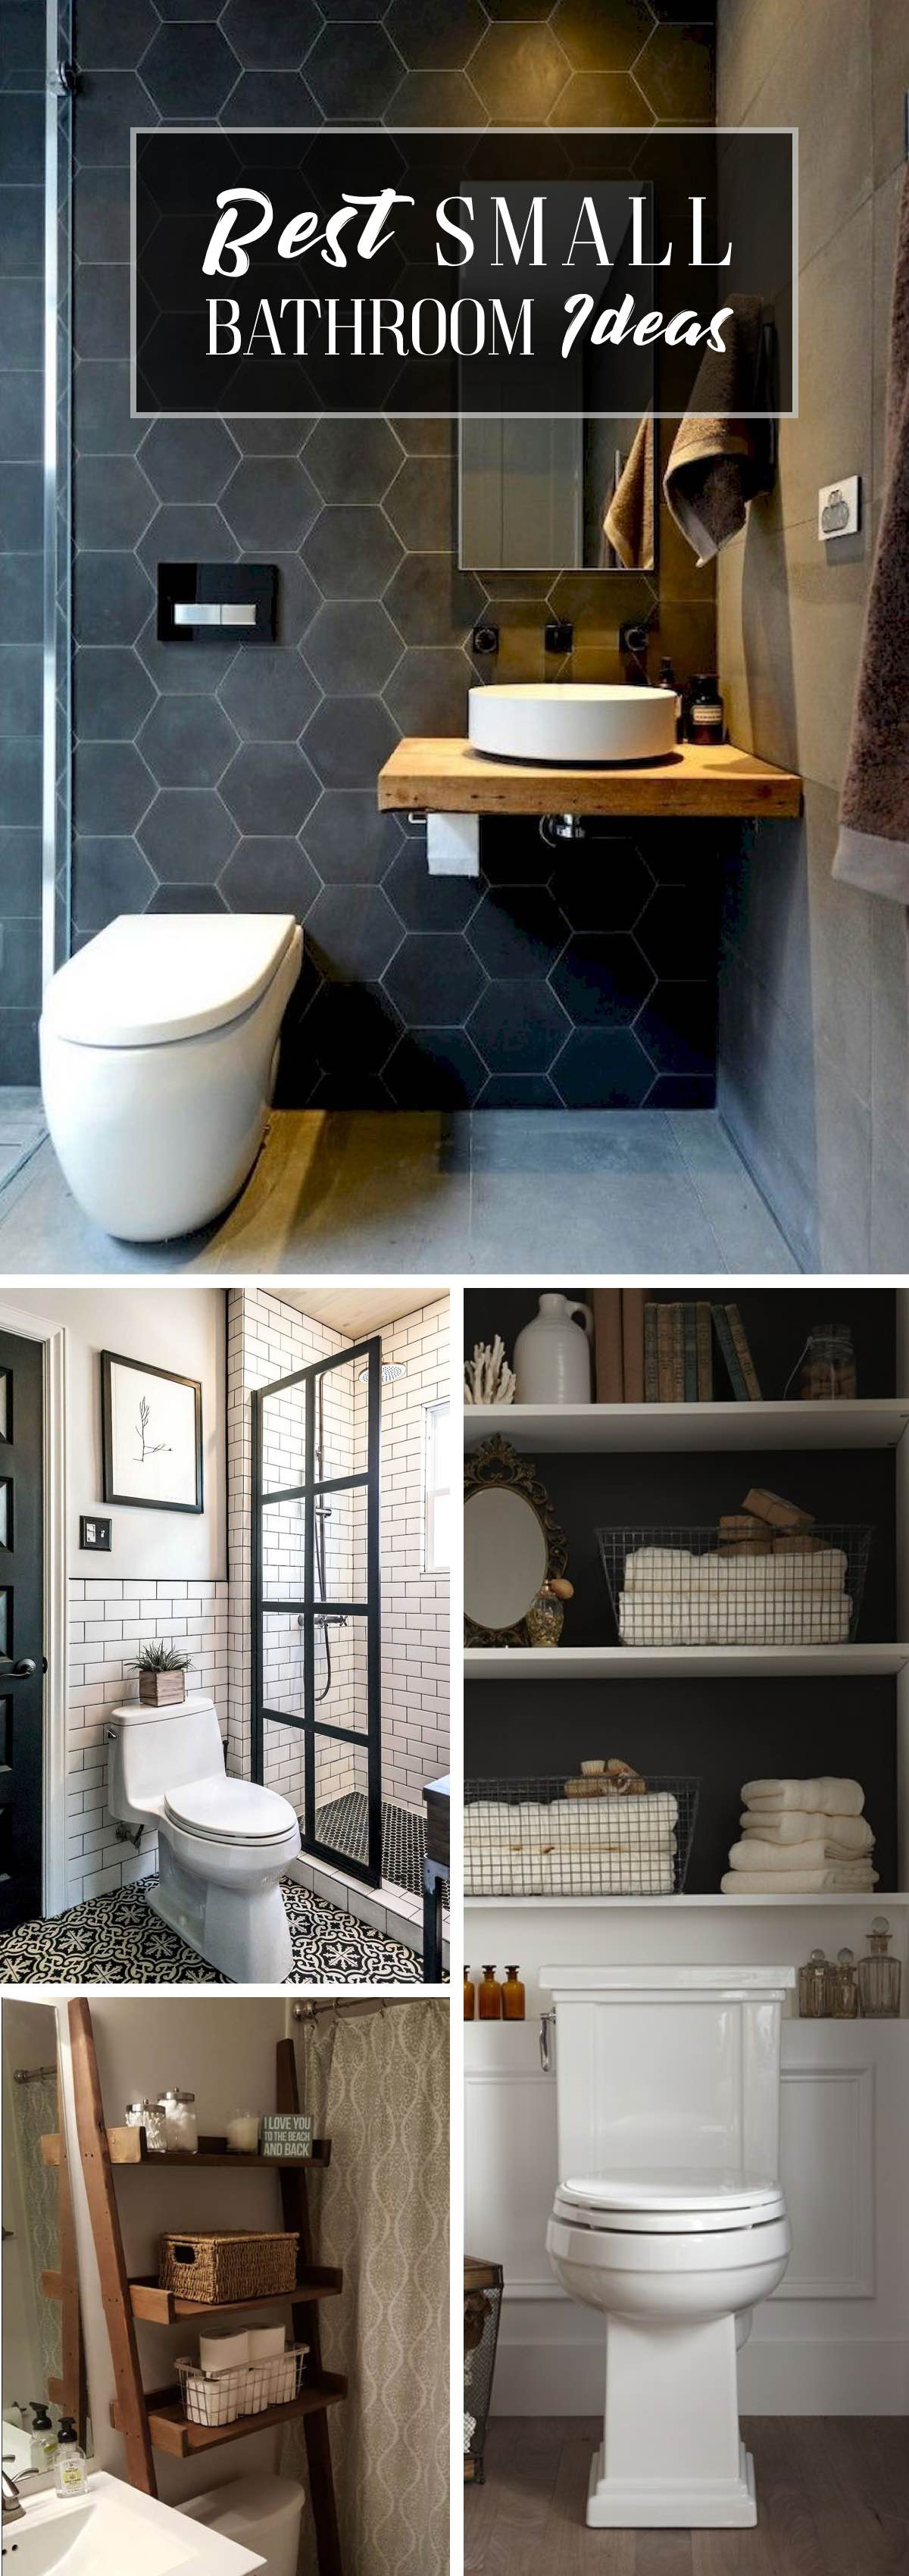 Best Small Bathroom Ideas Pin This Image!